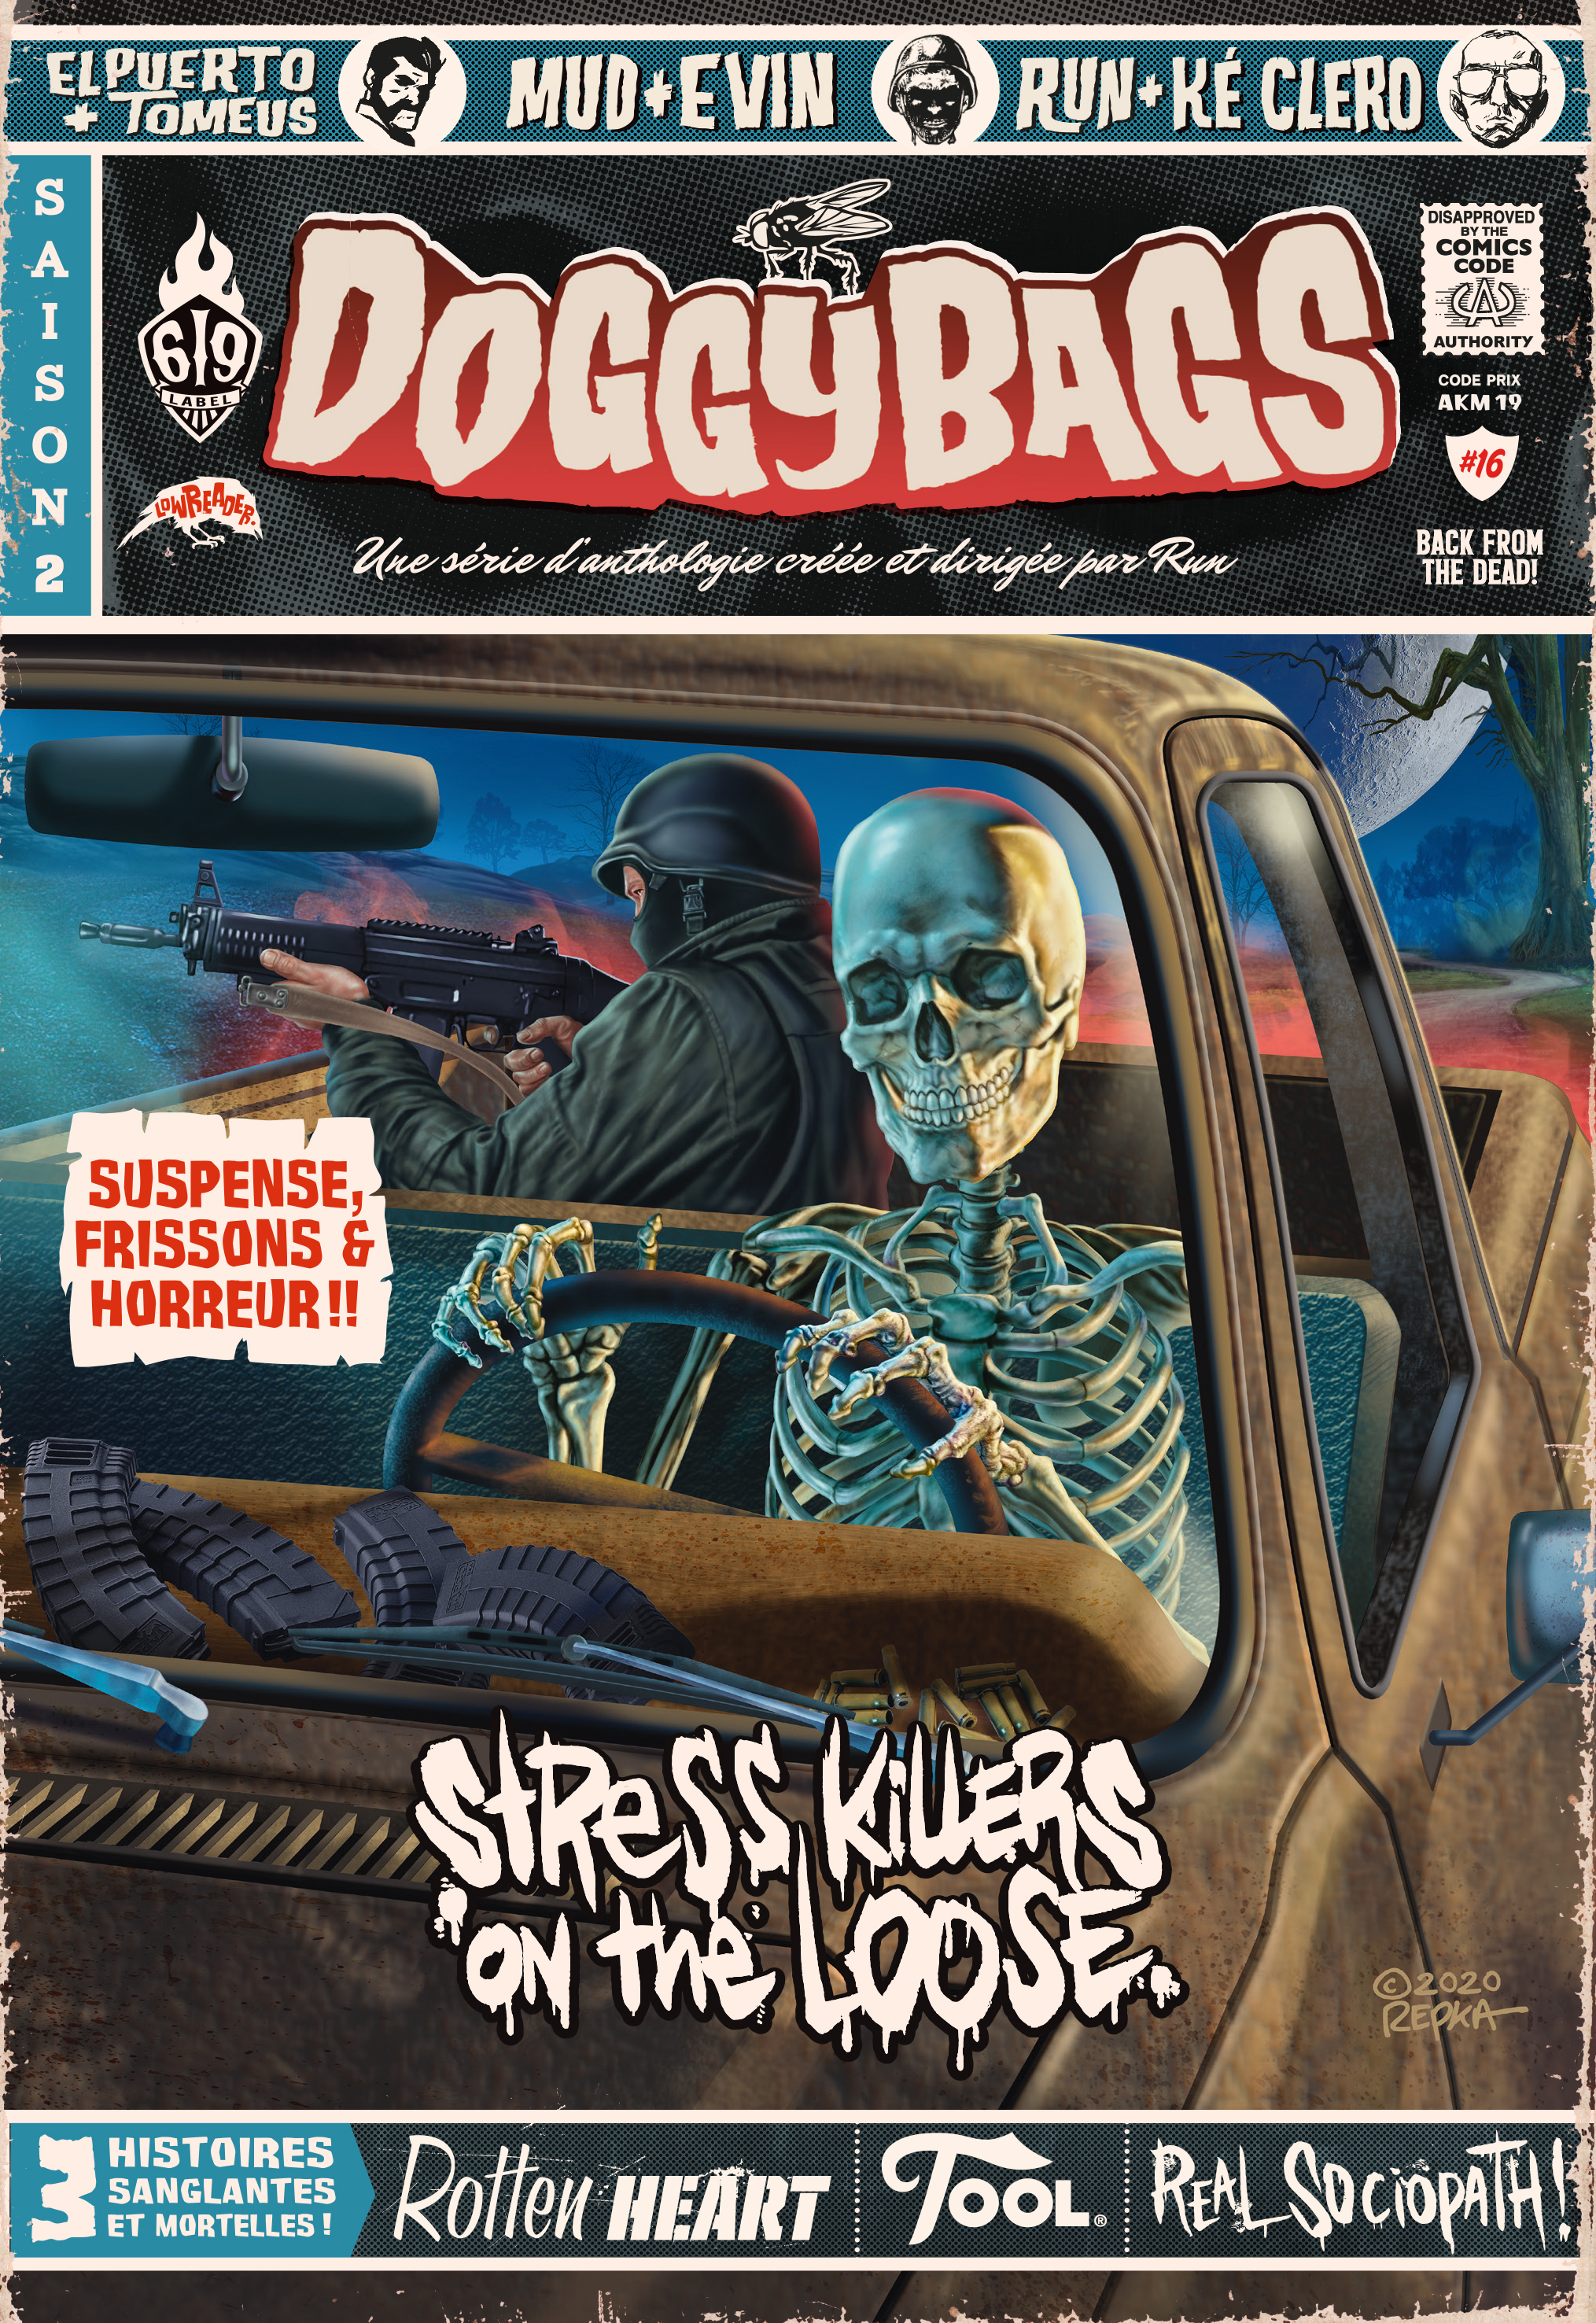 DOGGYBAGS, TOME 16. STRESS KILLERS ON THE LOOSE